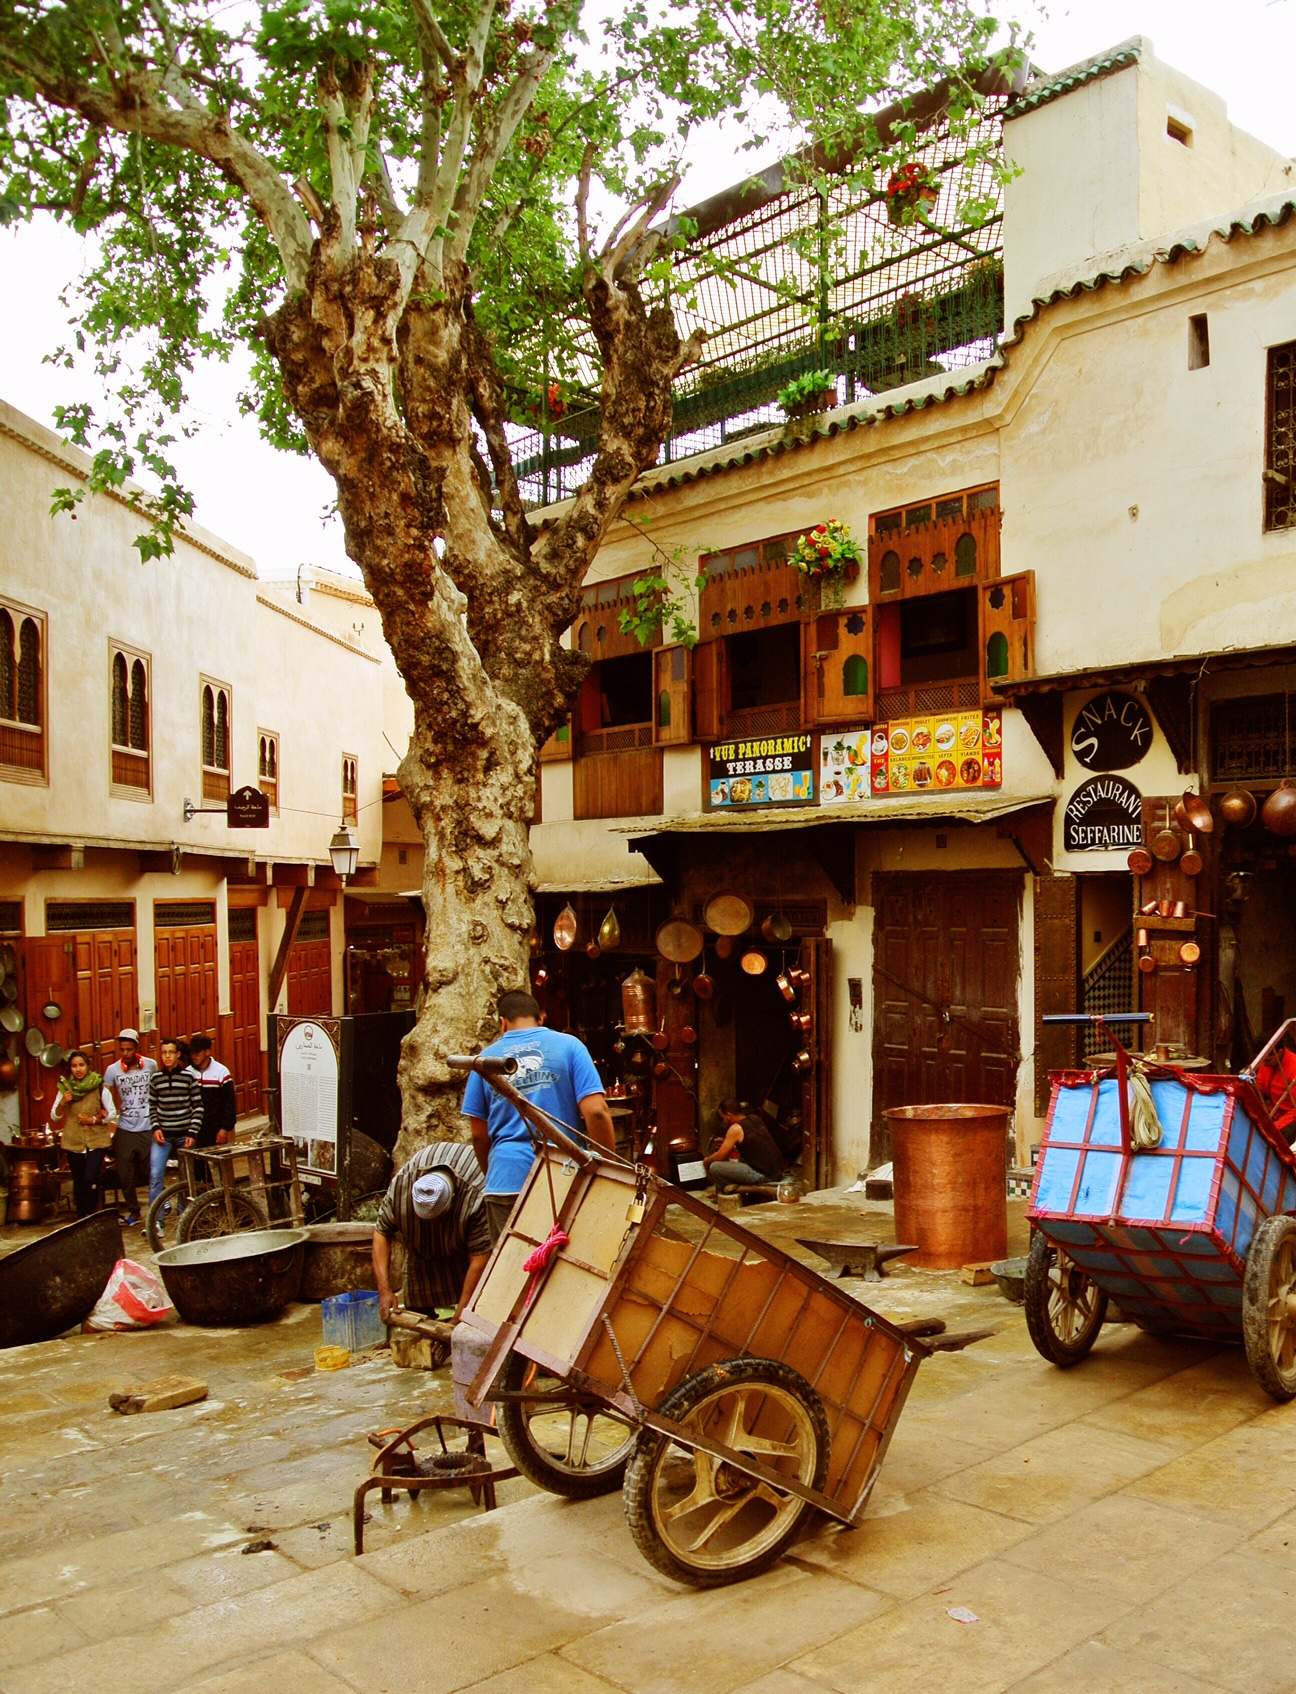 Place Seffarine, with its gnarled tree in its center, is one of the largest open public spaces in the medina